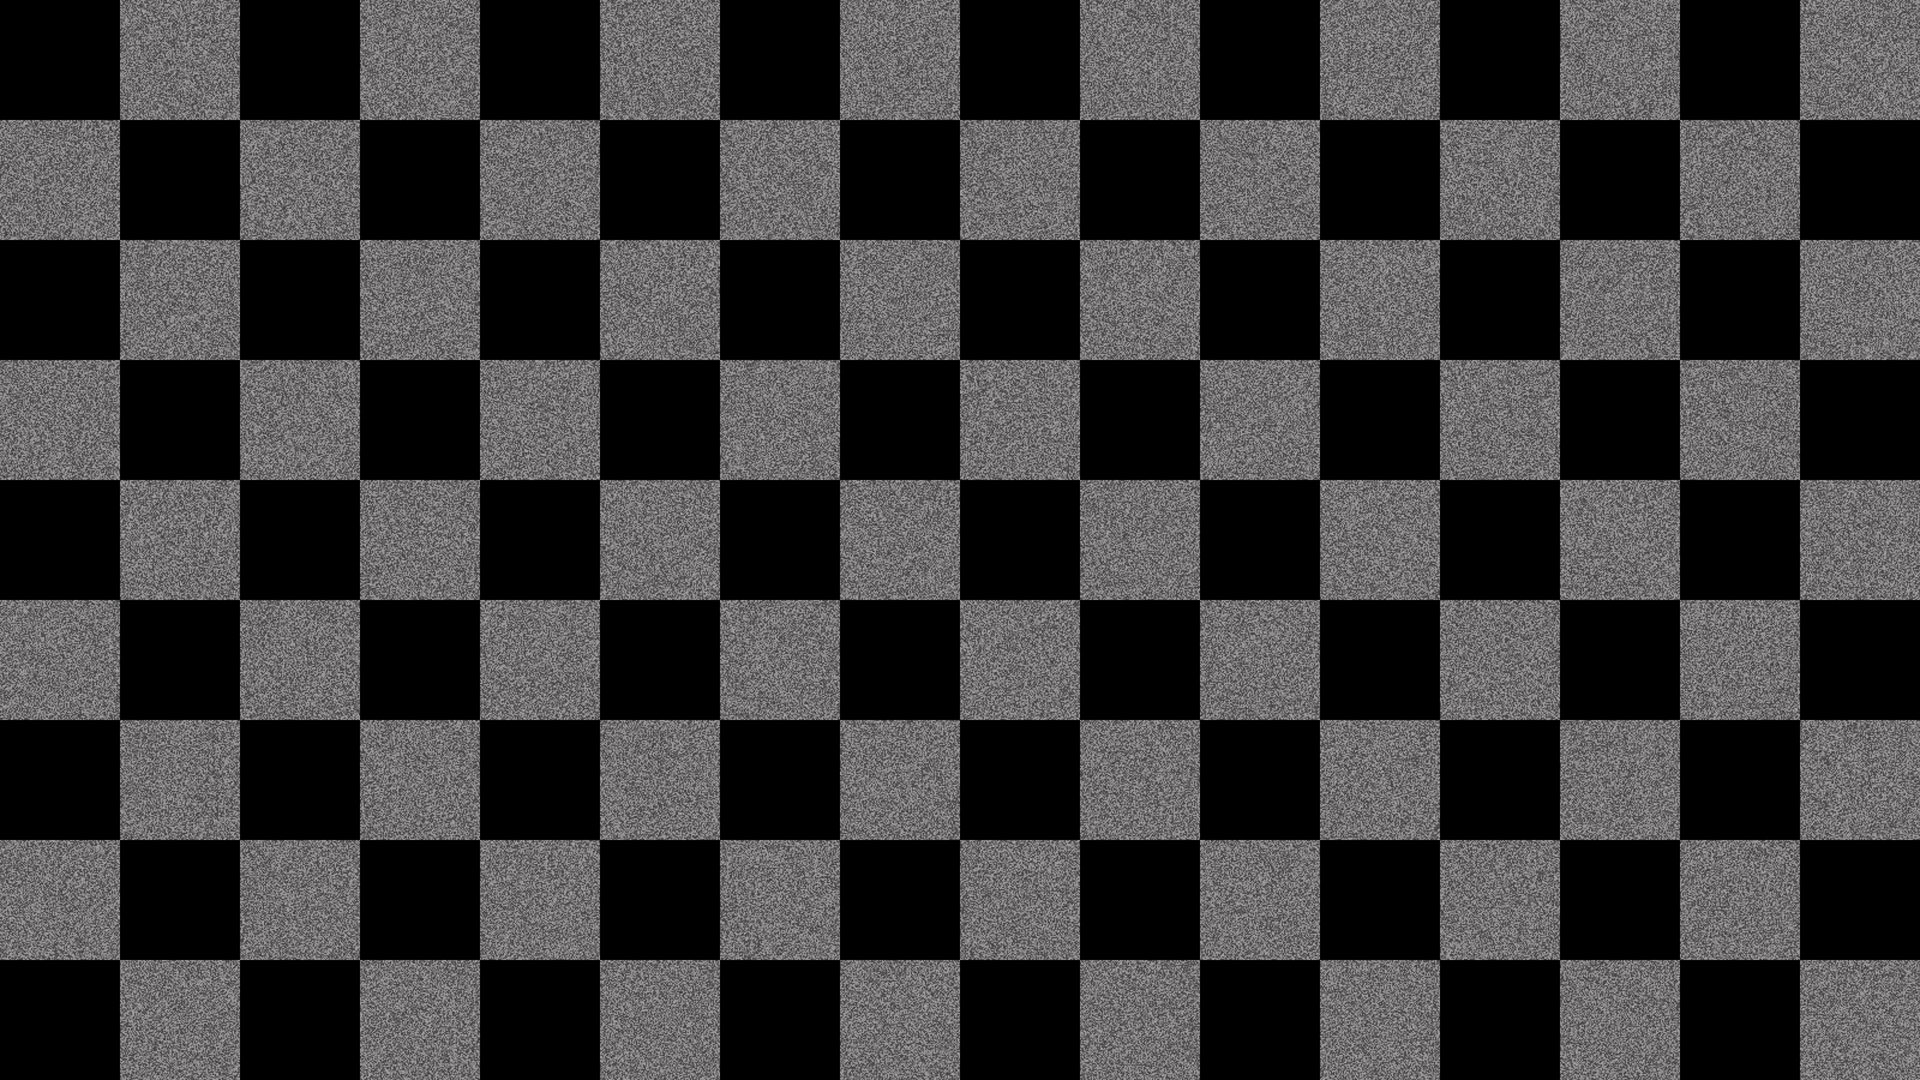 artistic checkered pattern wallpapers square wallpaper 1920x1080 hdw 471